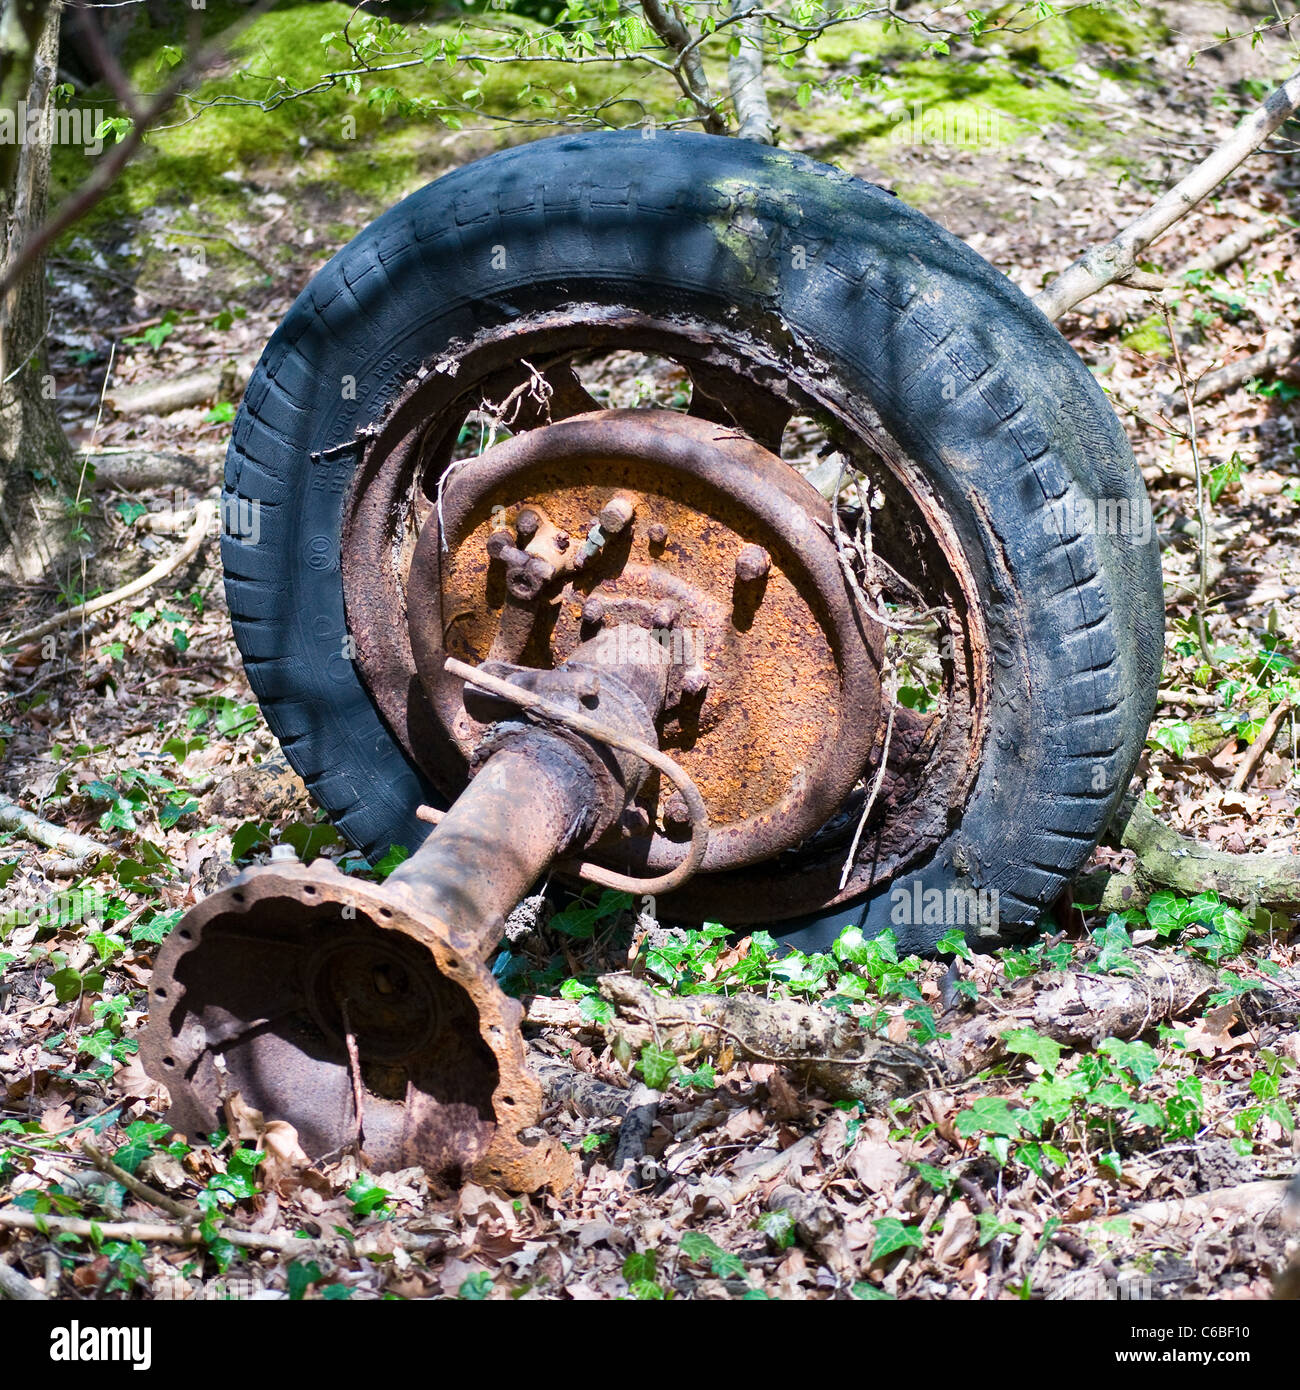 An old rusty tractor wheel, tyre and axial in woodland - Stock Image